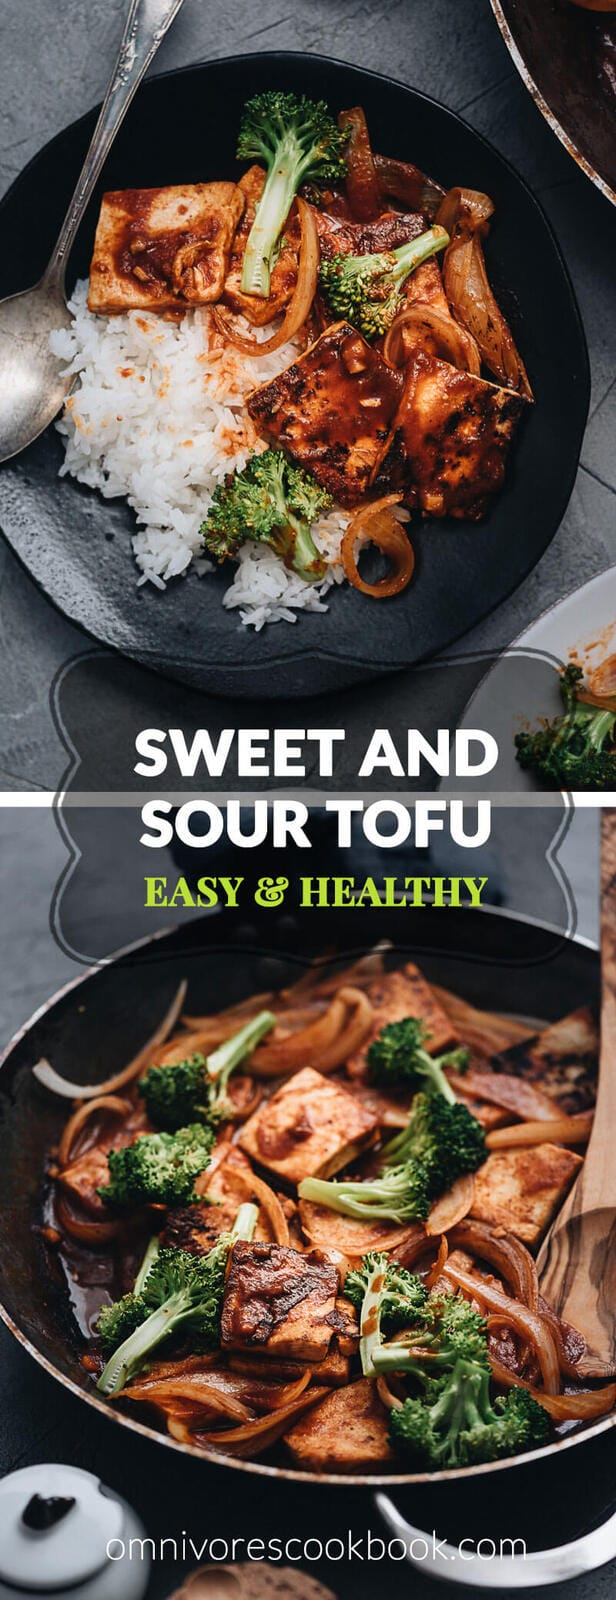 Sweet and Sour Tofu - A favorite Chinese dish with a meatless twist that gives you the contrast of sweet and sour for a healthy meal any night of the week. {Vegetarian, Vegan, Gluten-free}